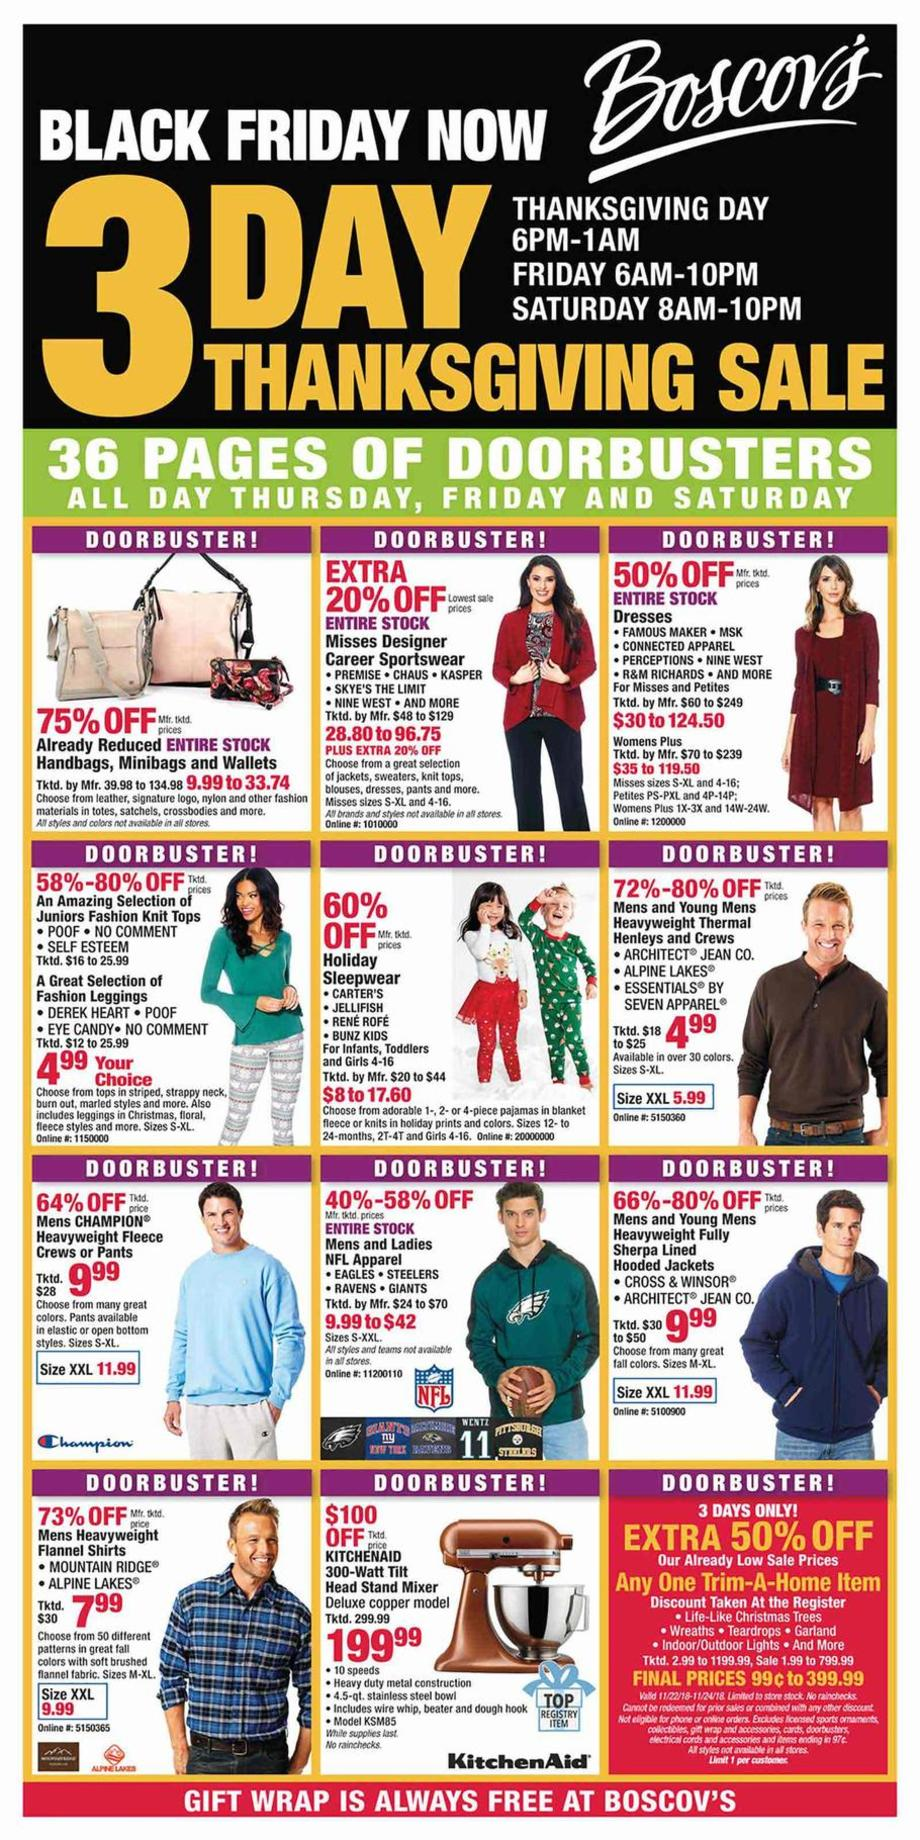 Boscov's Black Friday Ad Scan